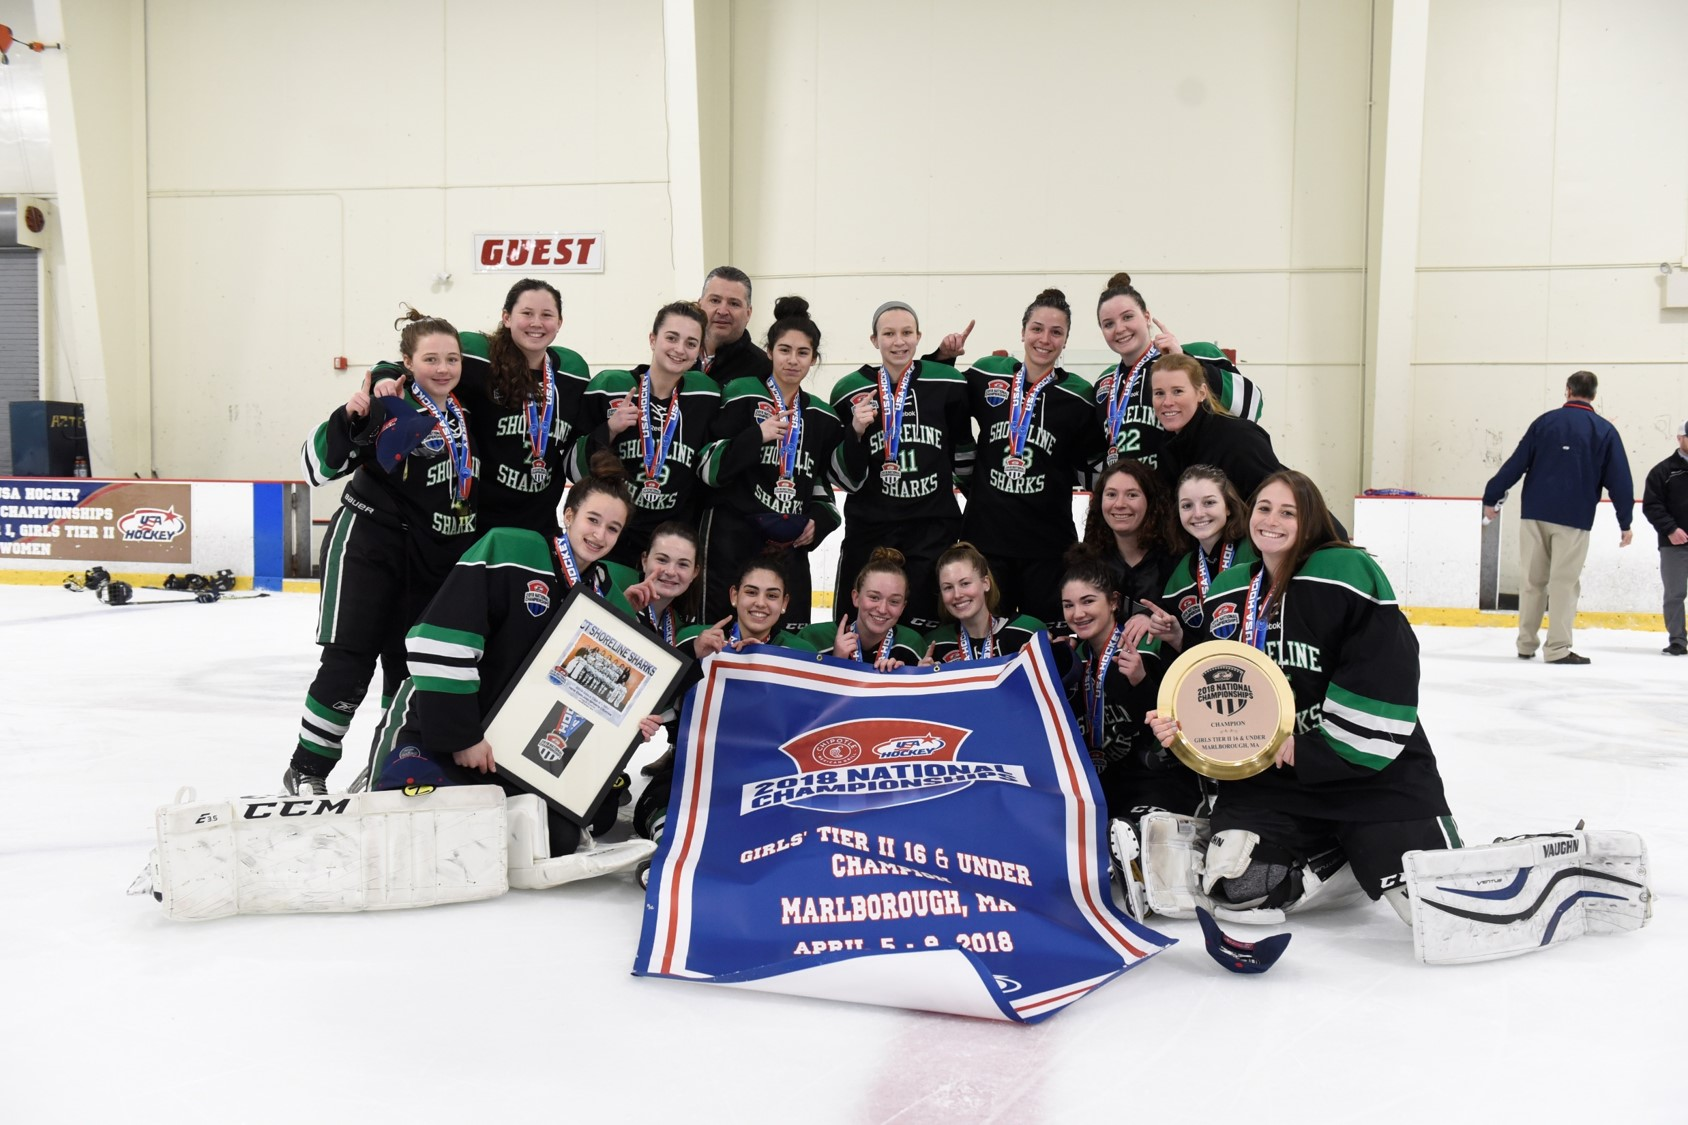 Shoreline SHarks 2018 USA Hockey Girls Tier II National Champions